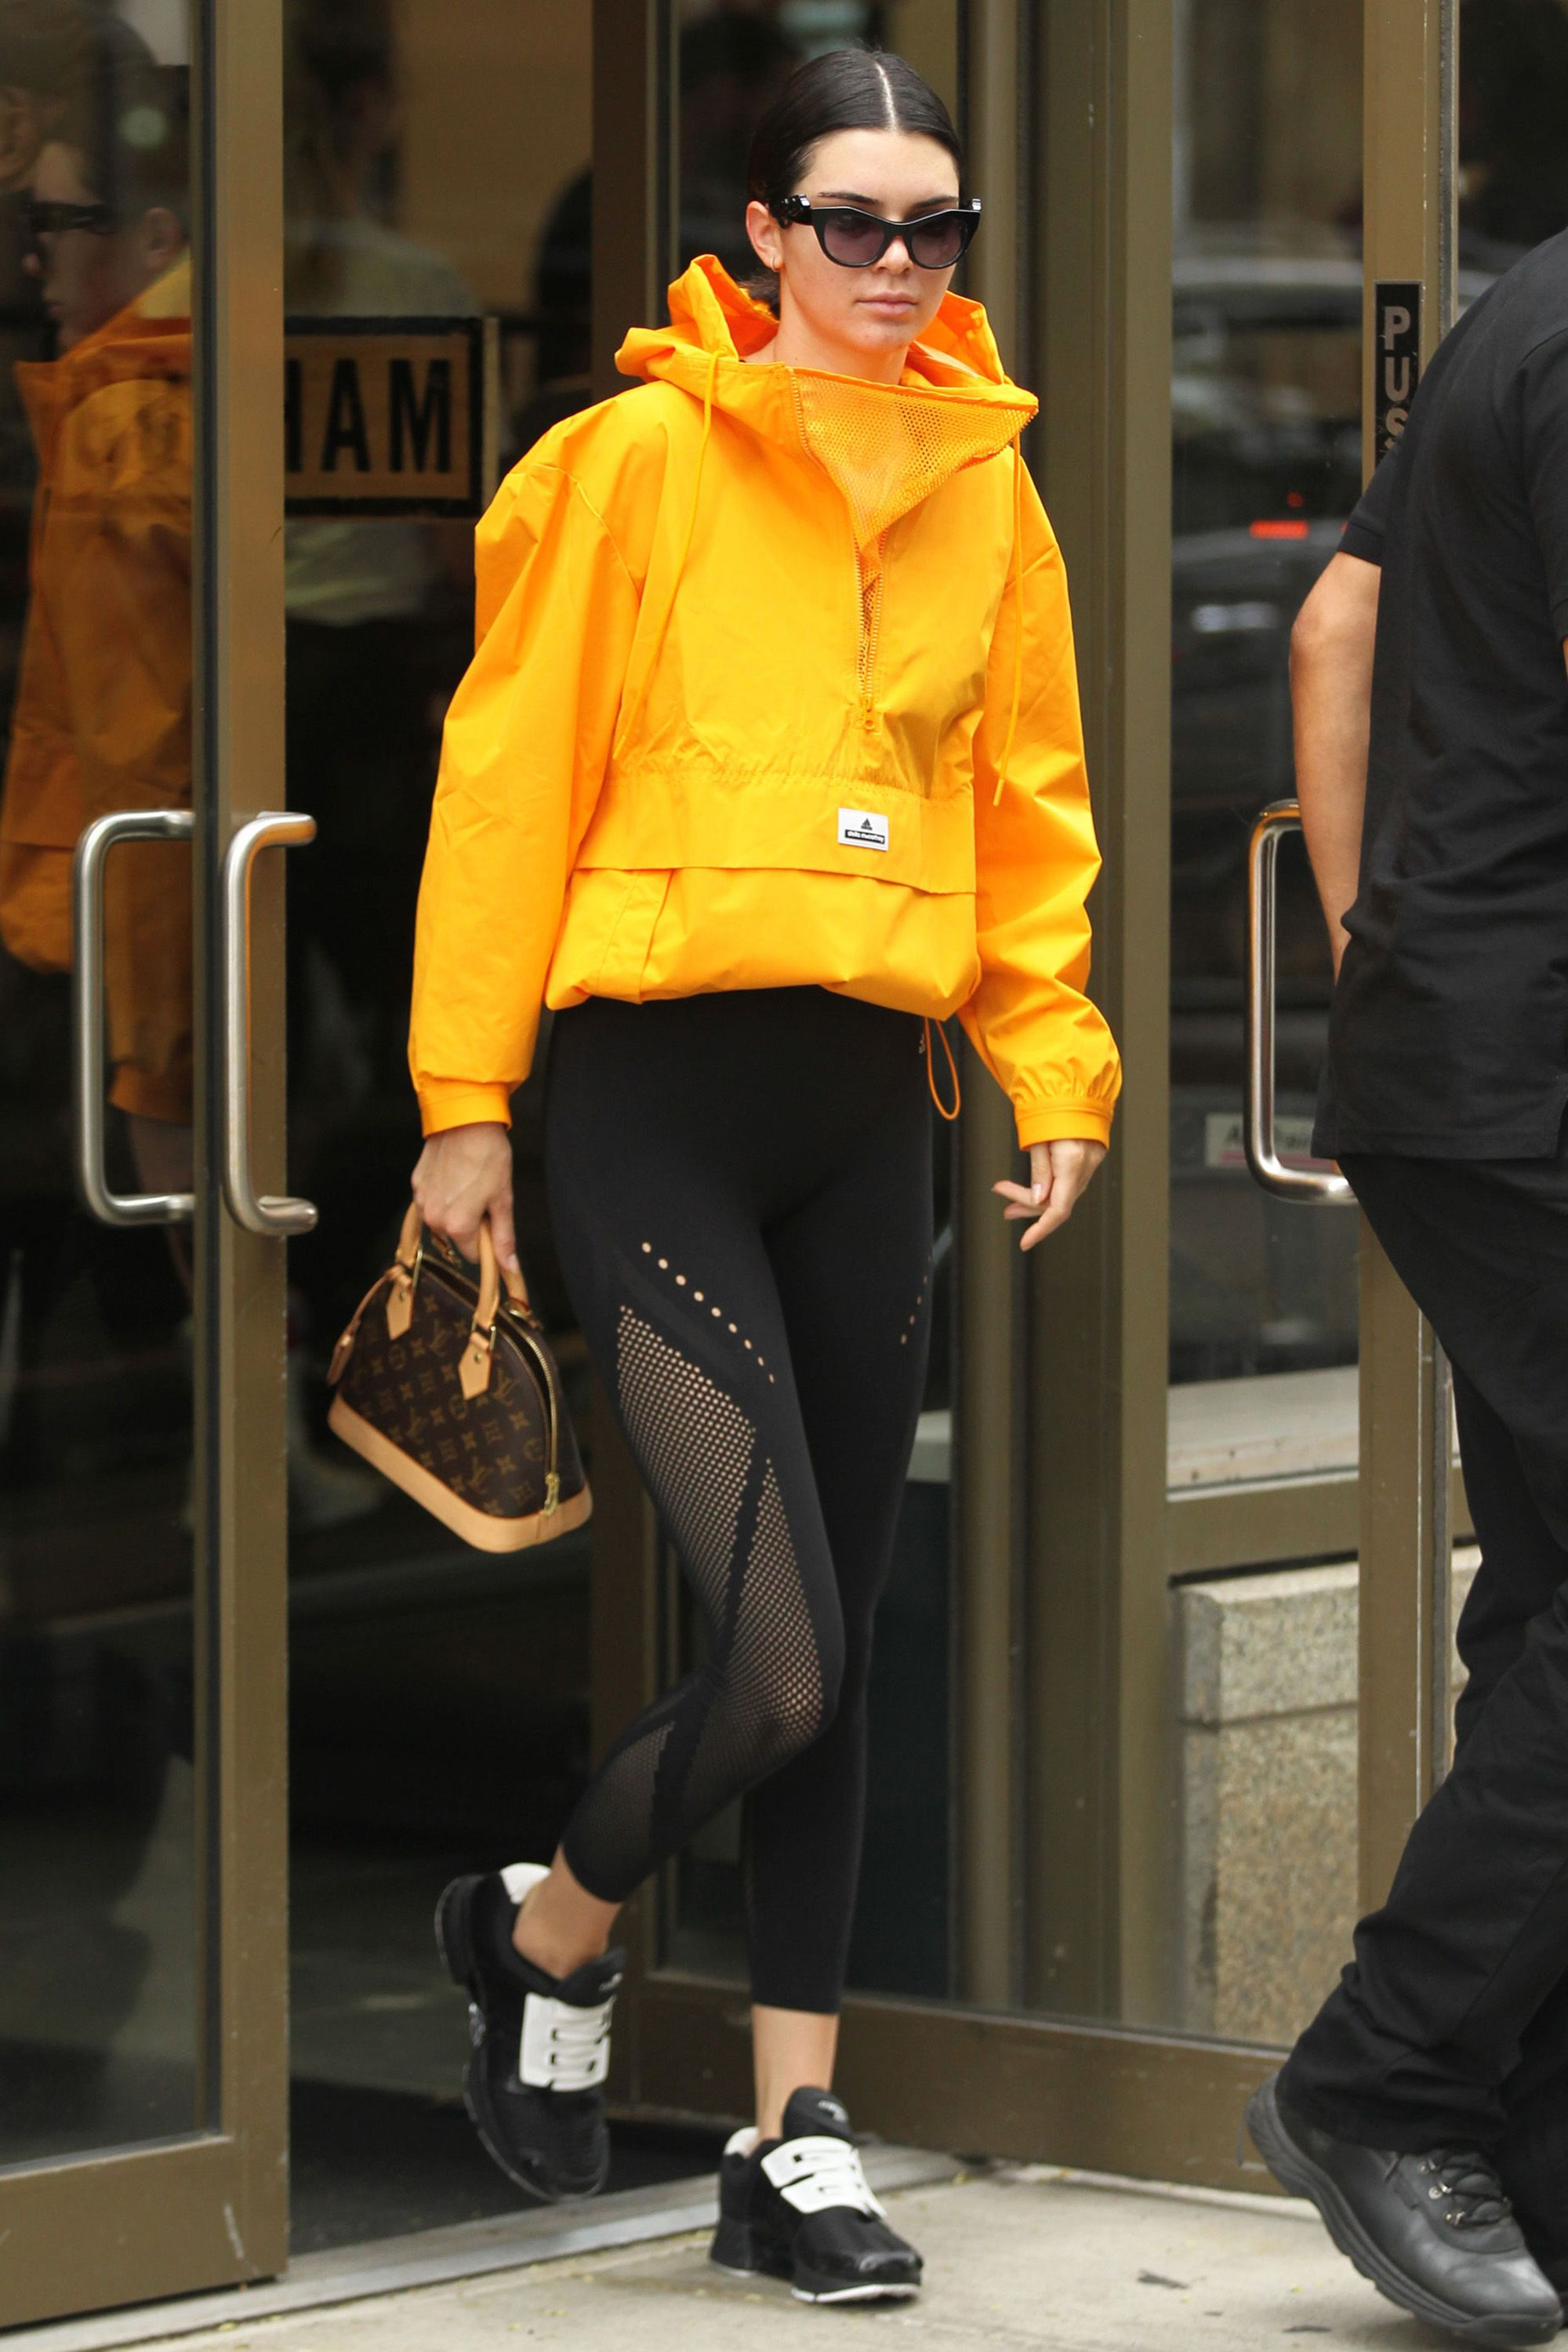 hbz-celebs-in-workout-gear-kendall-jenner-yellow-jacket-1501187269.jpg (980×1470)